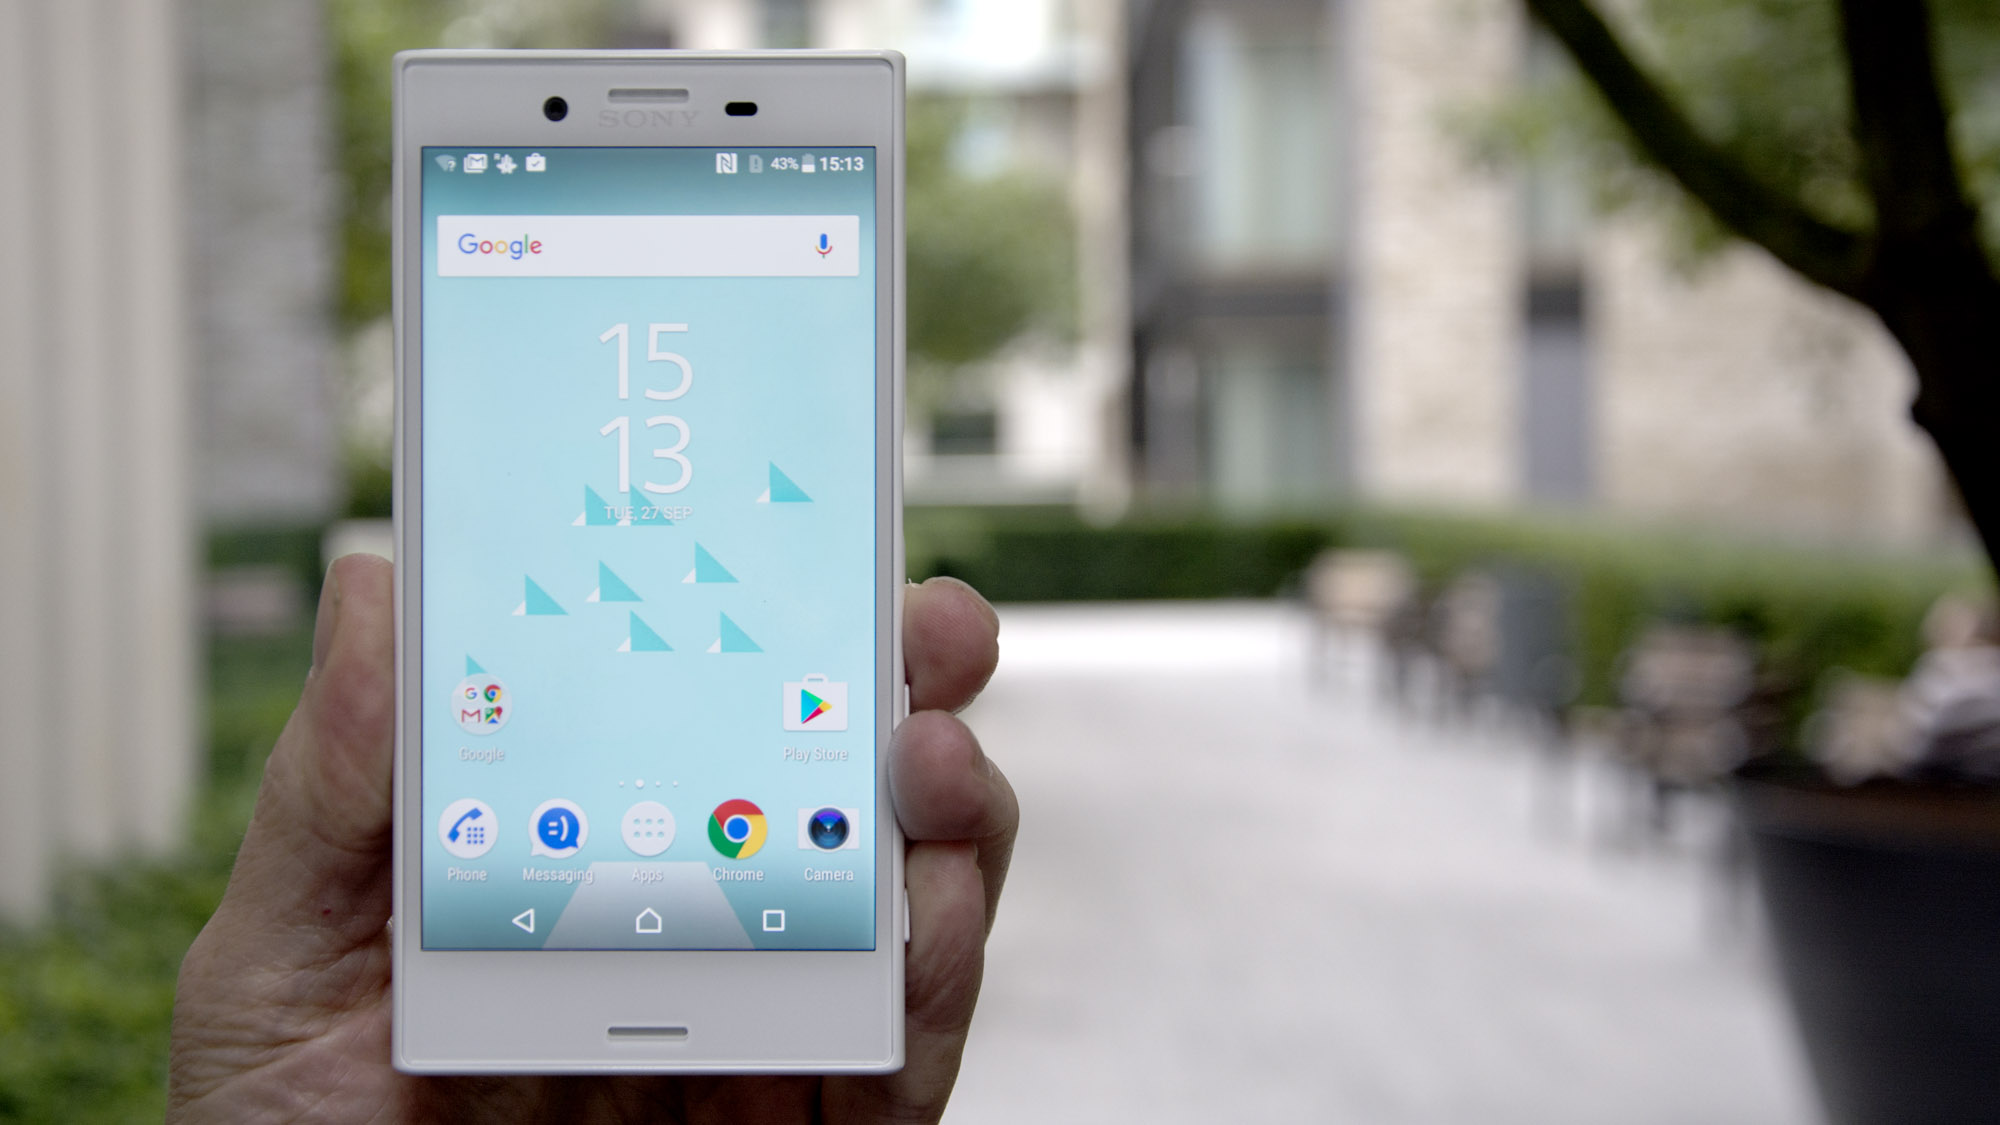 sony xperia x compact review small but not quite as mighty 2 expert reviews. Black Bedroom Furniture Sets. Home Design Ideas